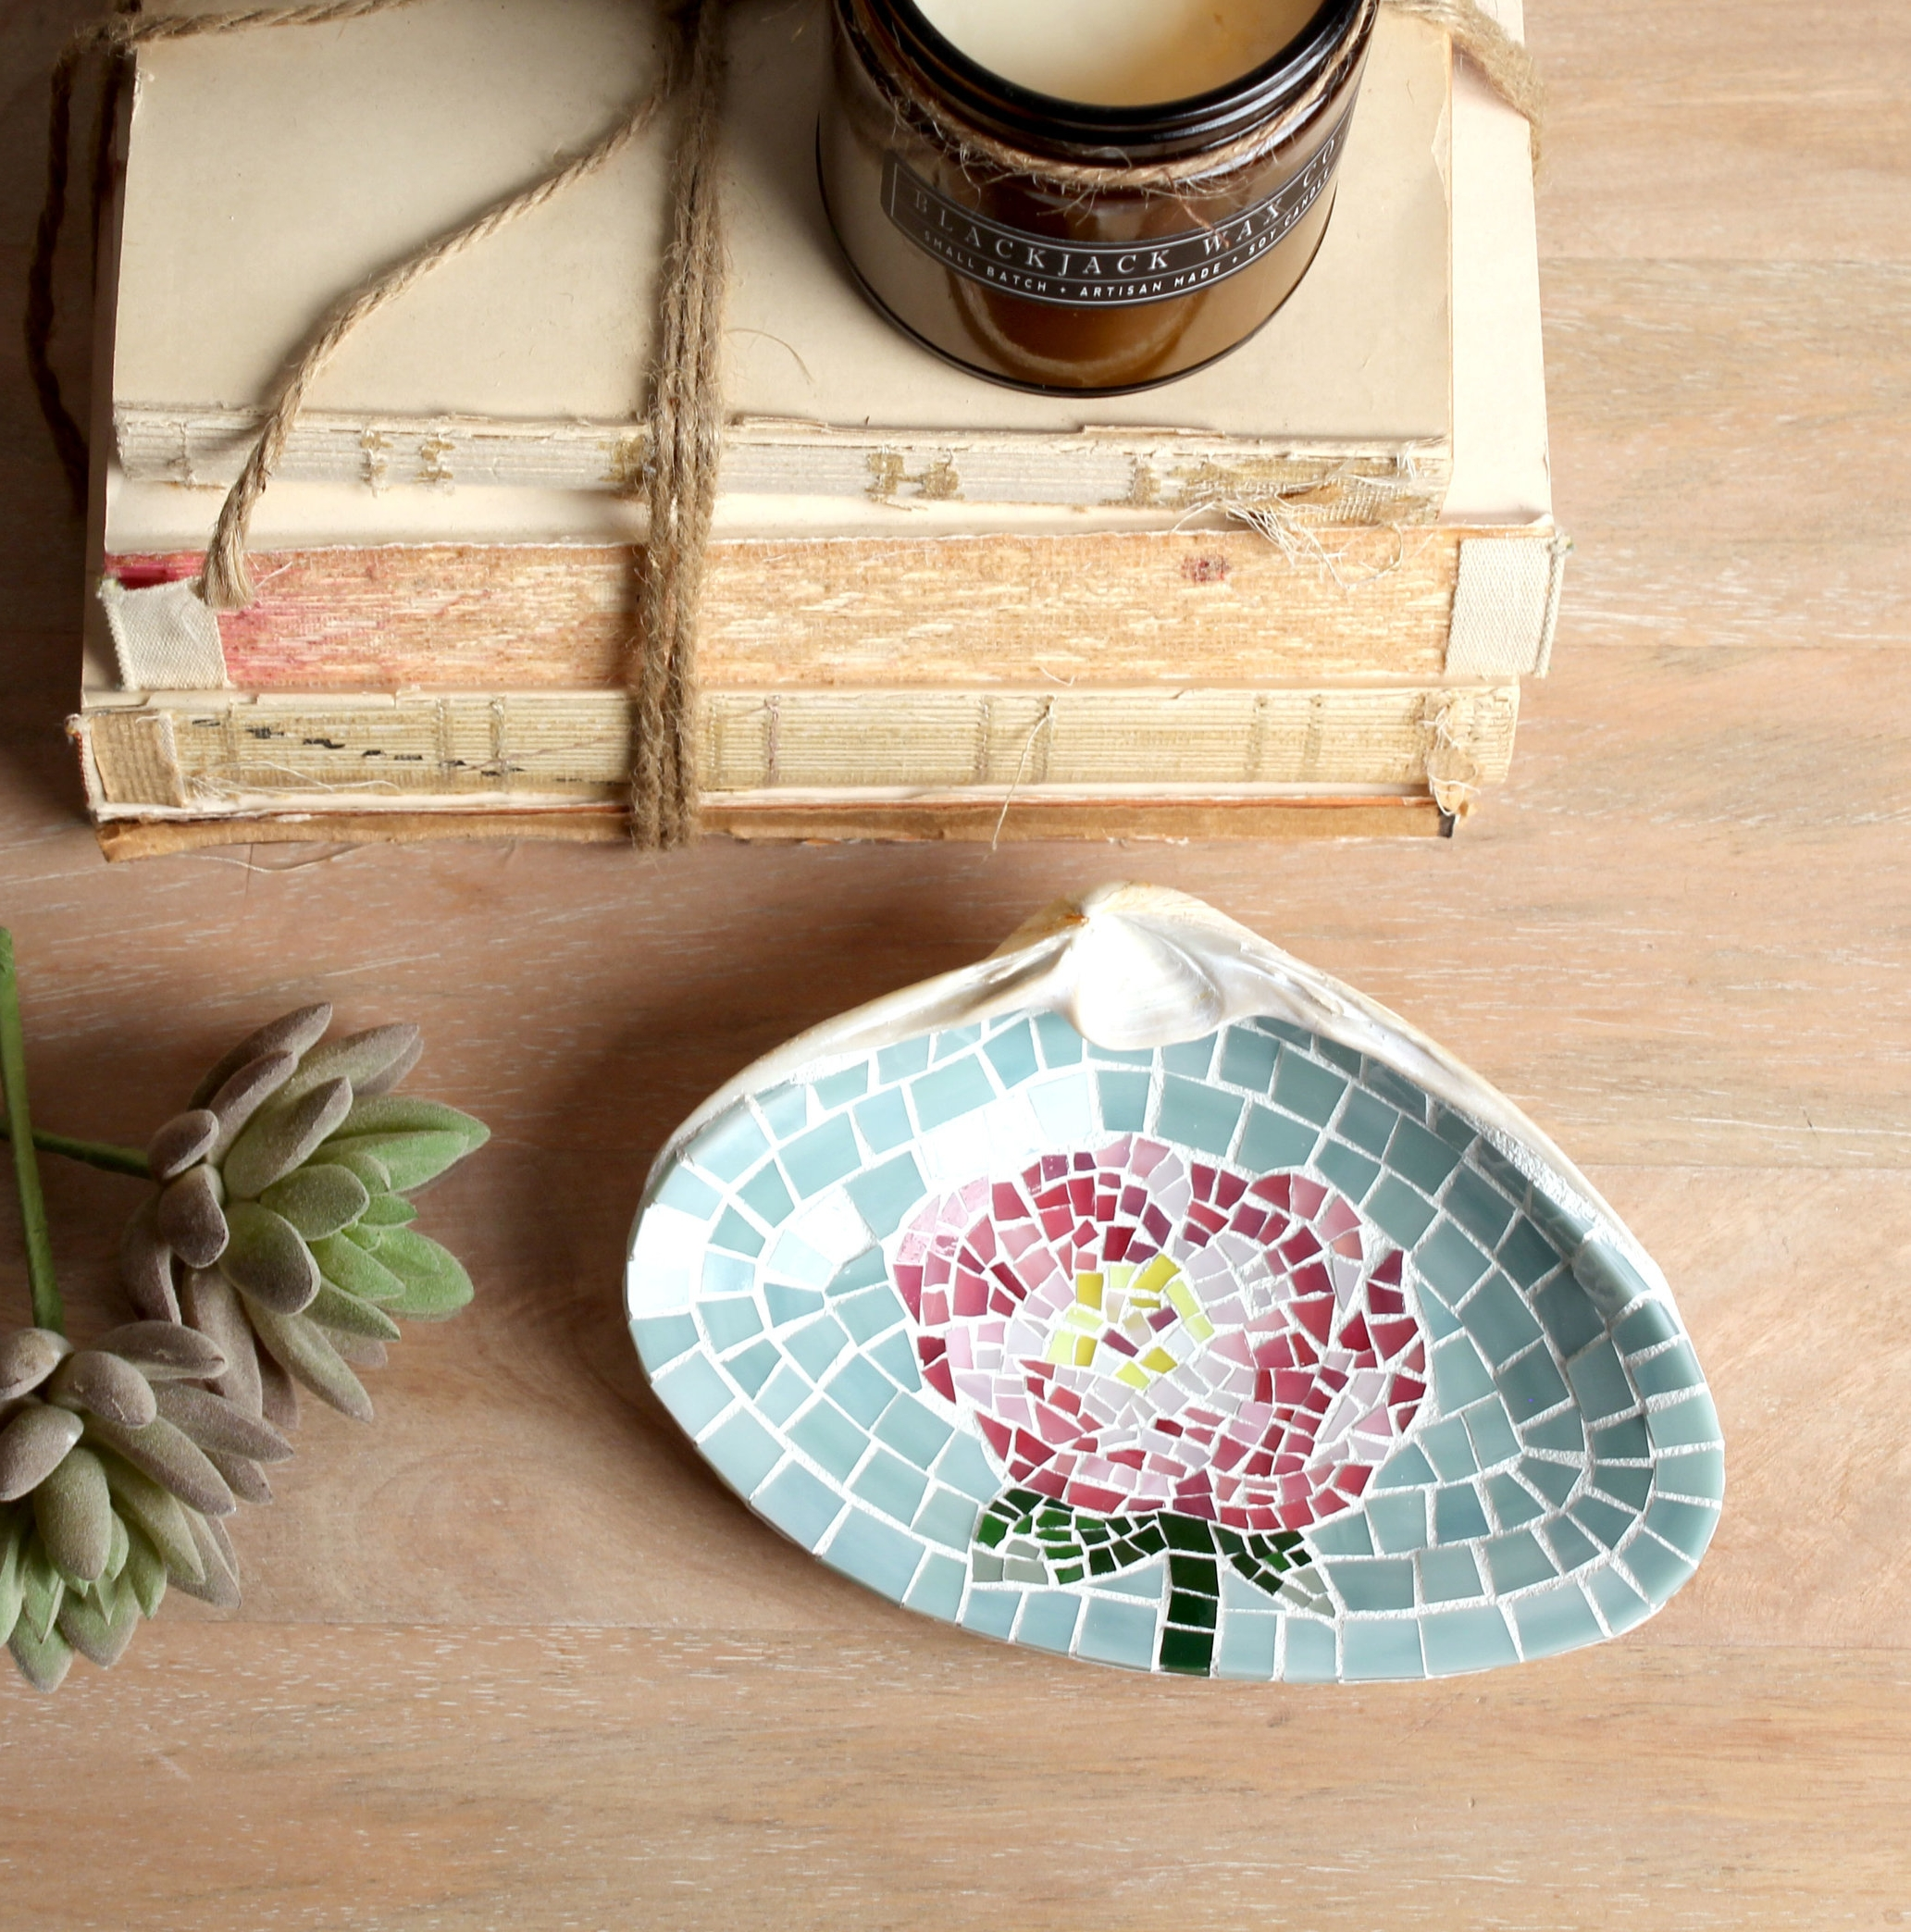 Pink_peony_flower_ring_dish_mosaic_stained_Glass_tile.jpg